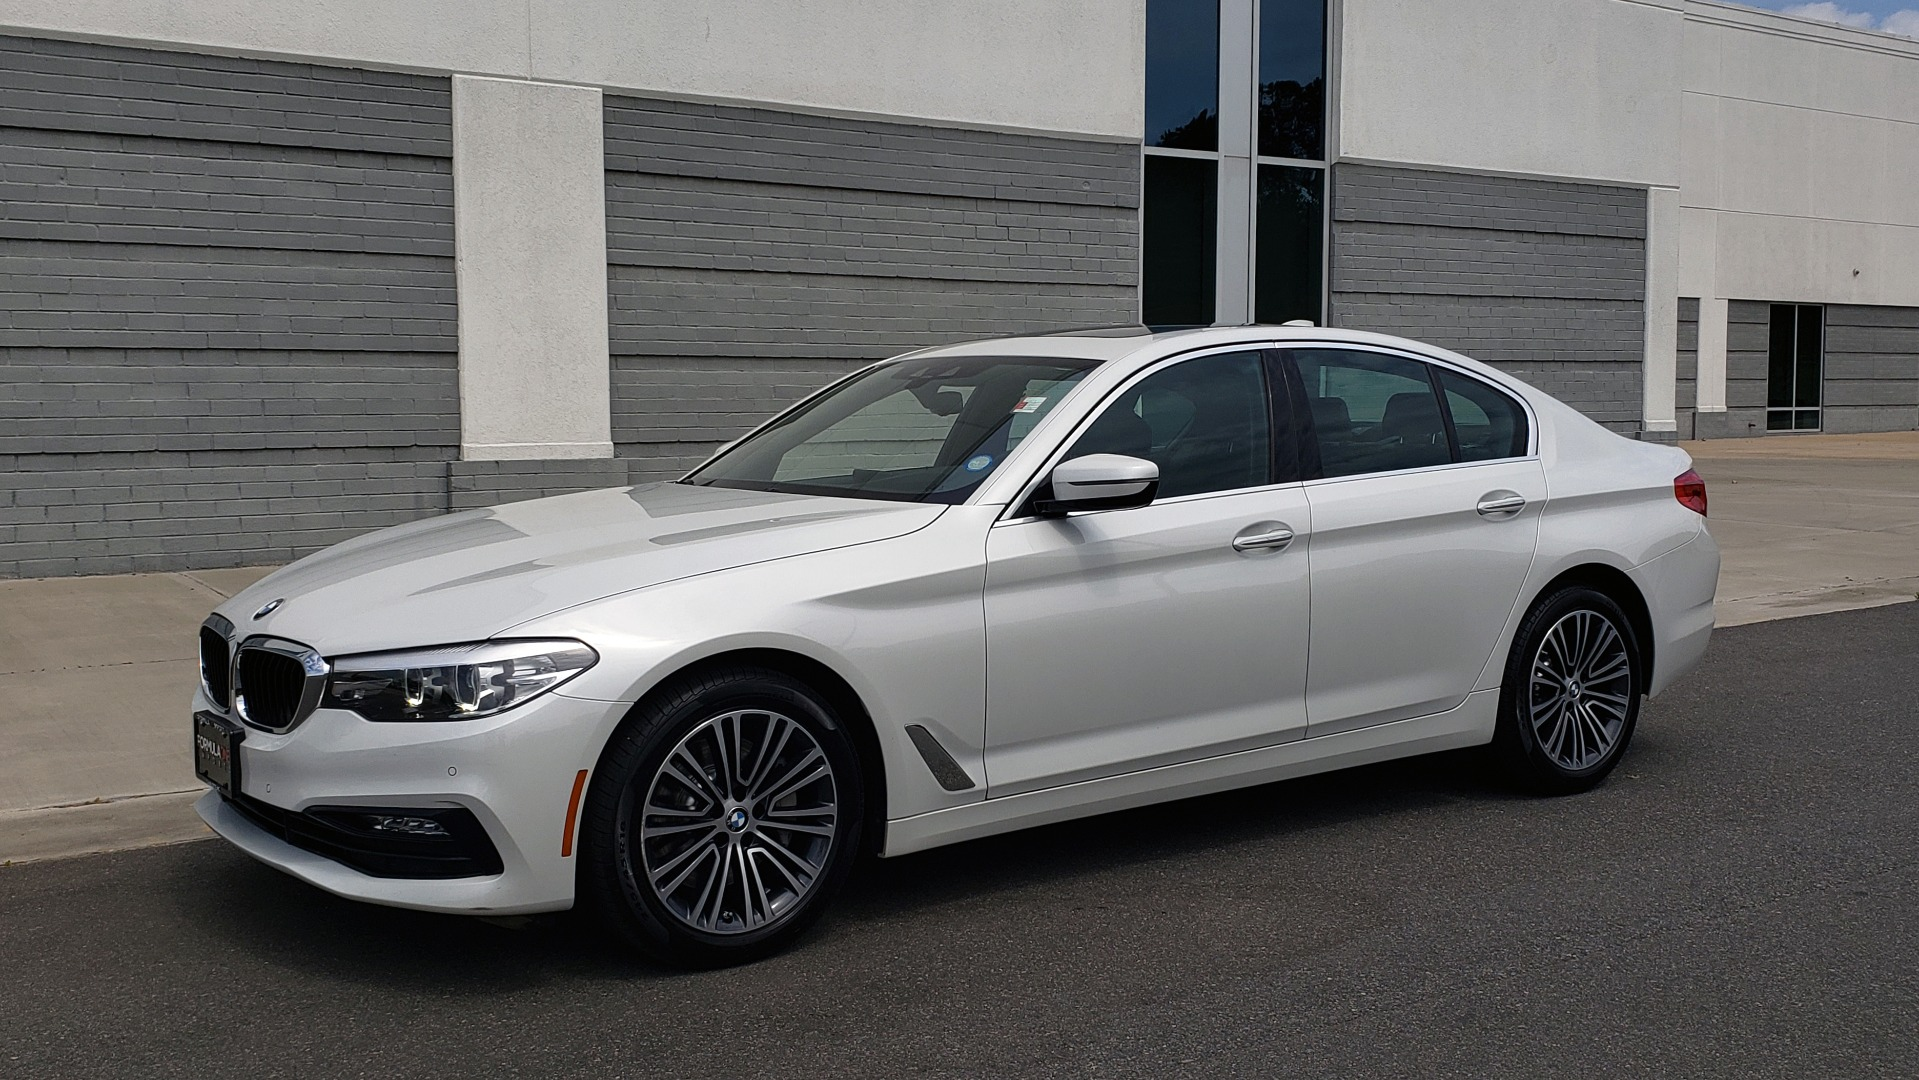 Used 2018 BMW 5 SERIES 530I XDRIVE PREMIUM / NAV / DRVR ASST / PARK ASST / H/K SND for sale $32,795 at Formula Imports in Charlotte NC 28227 3